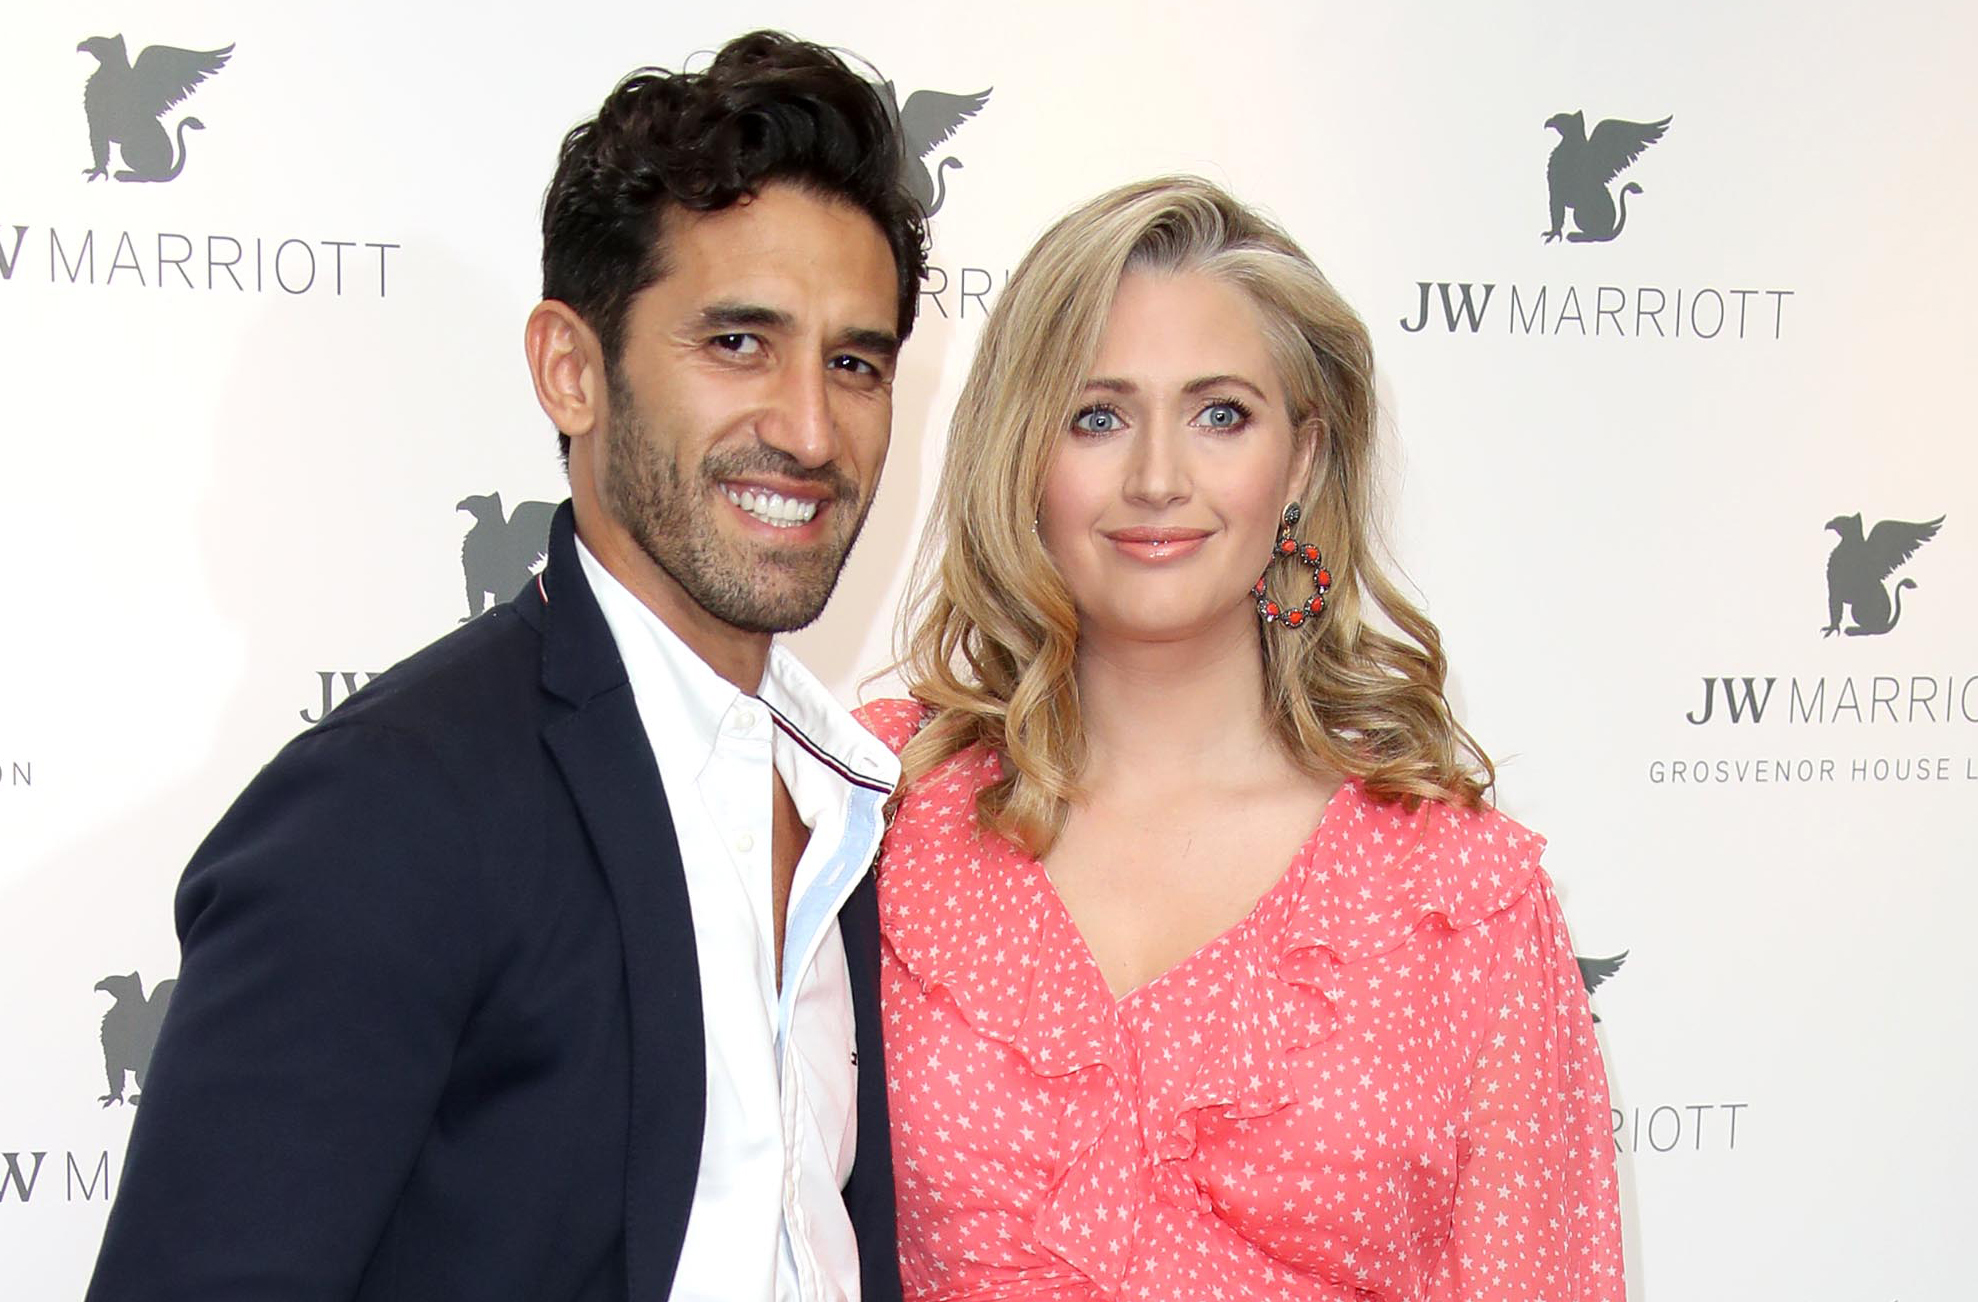 Sky Sports Presenter Hayley Mcqueen Welcomes Miracle Daughter With Fiance Kirk Newmann After Fertility Struggle